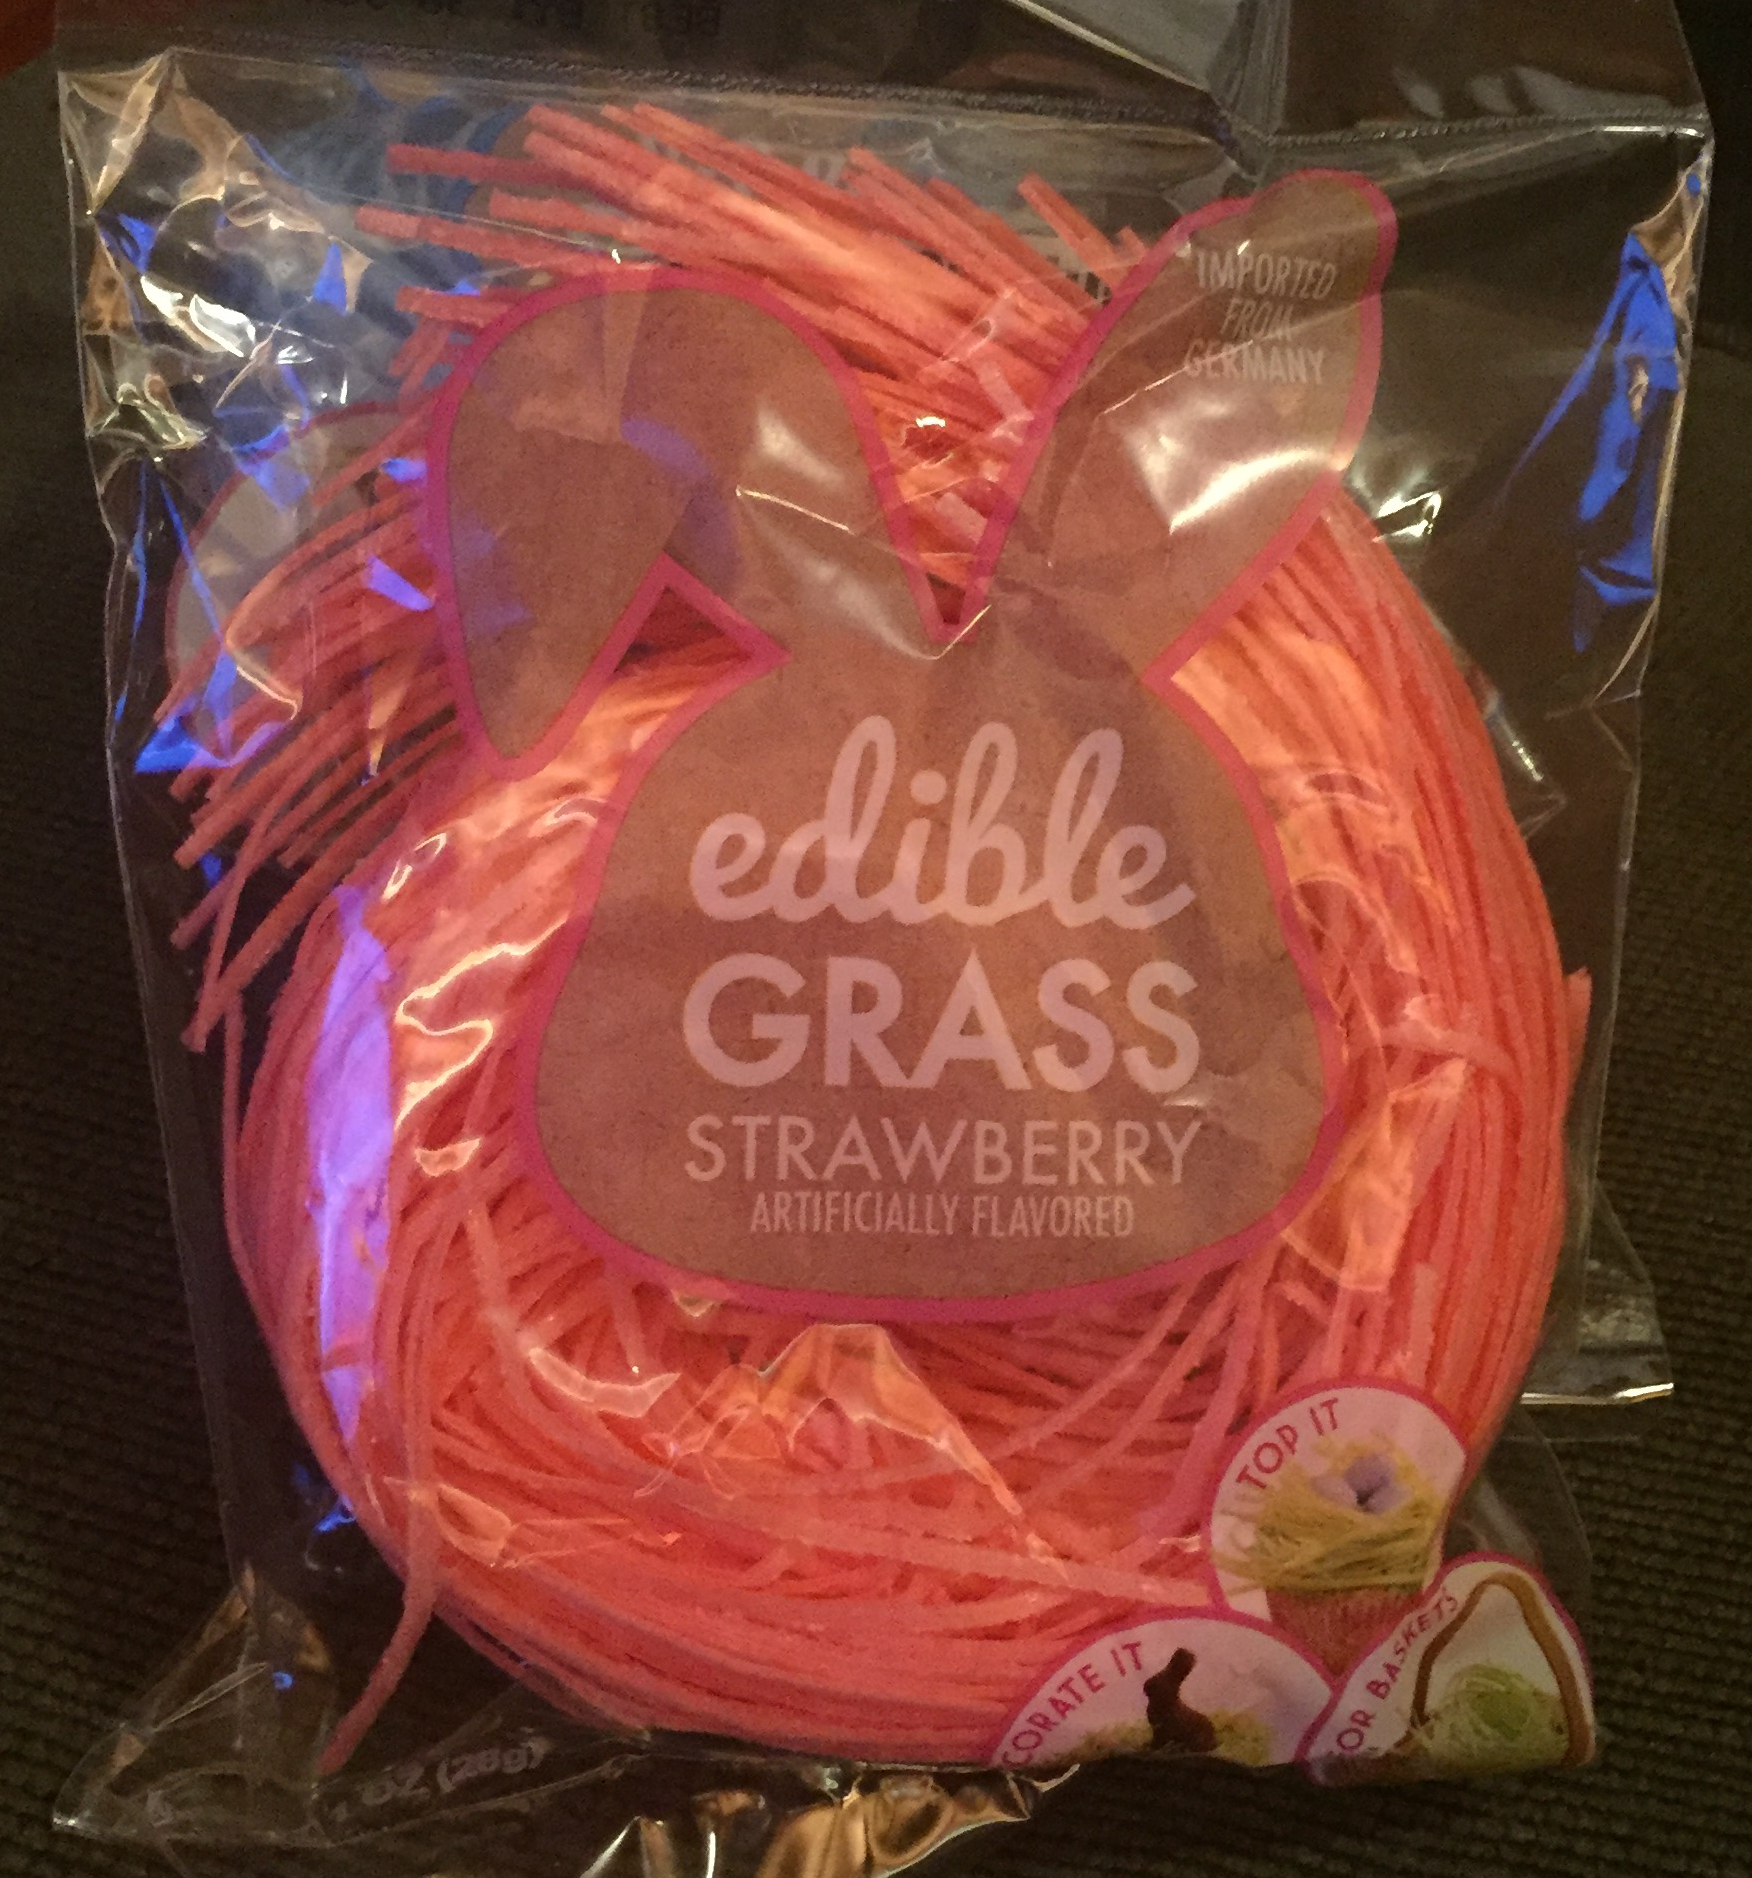 Edible Easter grass pack pink color strawberry flavor